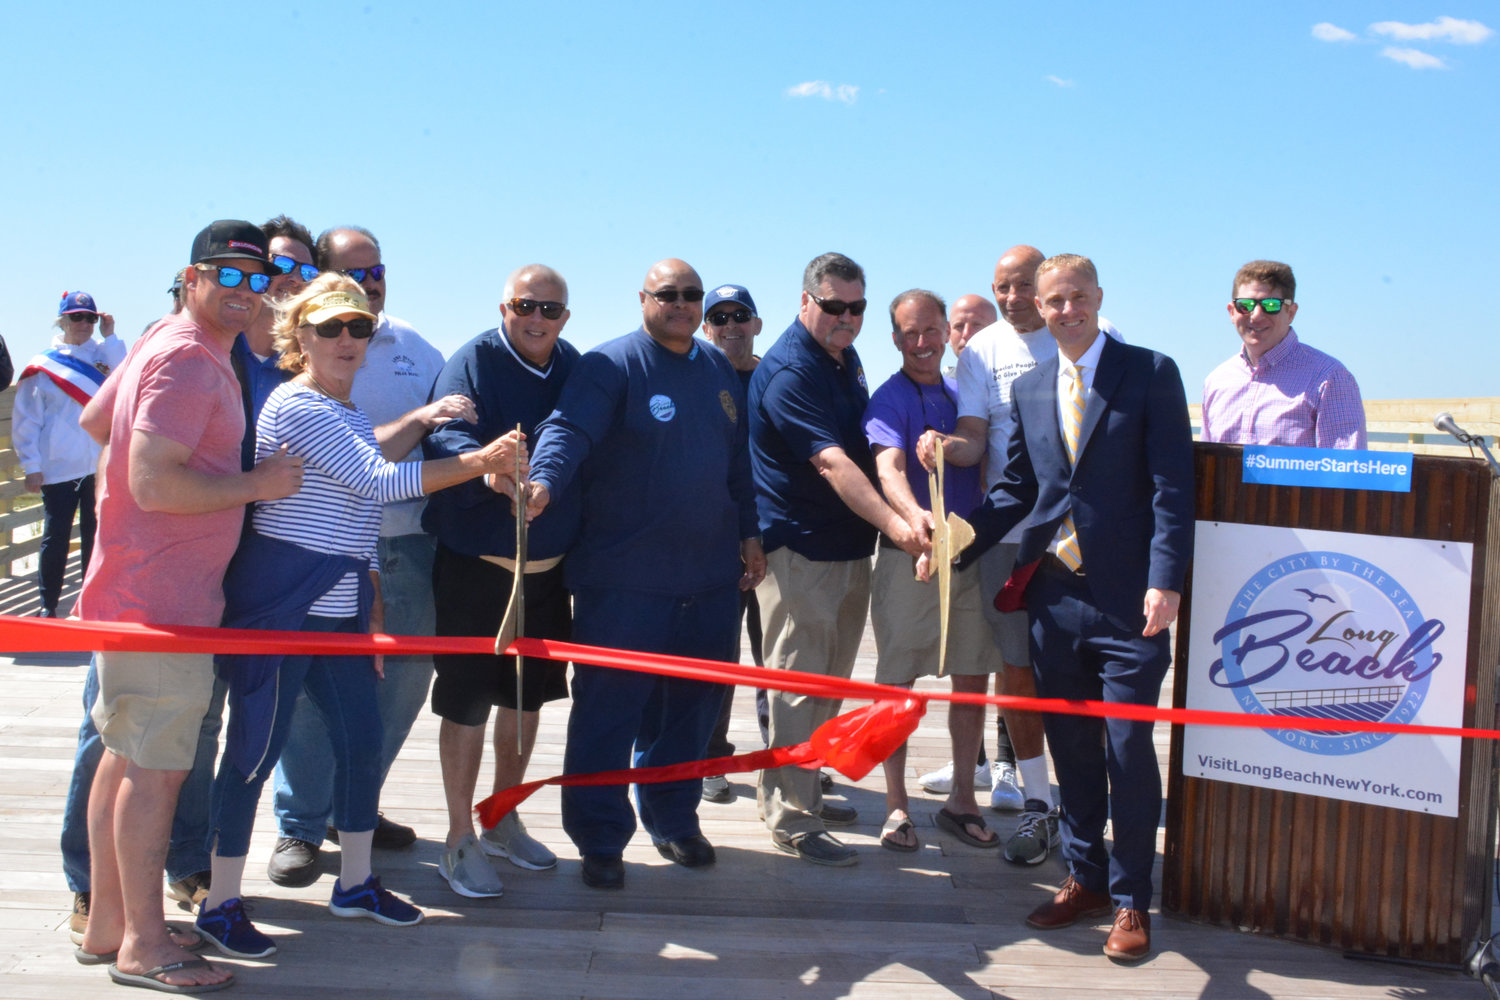 The city held a ribbon-cutting ceremony on the boardwalk Friday to mark the completion of the Army Corps of Engineers coastal protection project began in 2016.